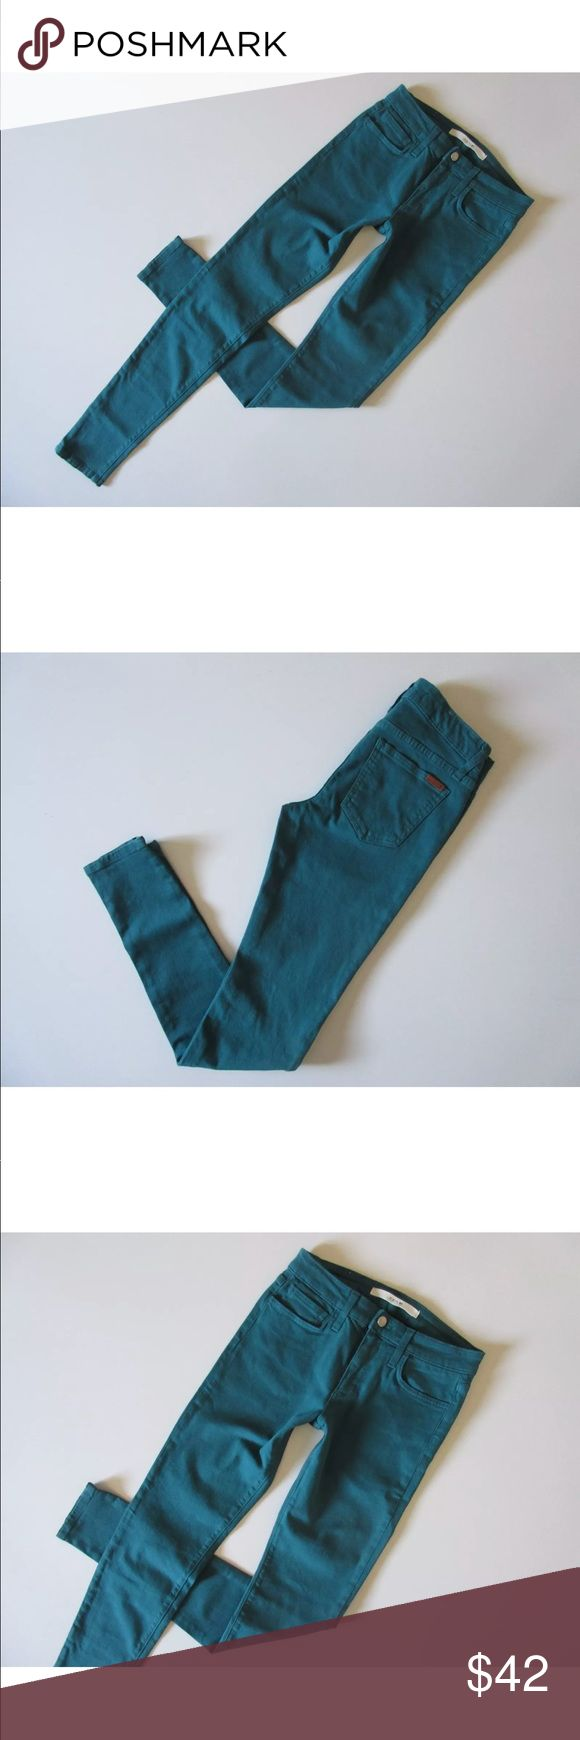 """Joe's Jeans The Skinny in Spruce Green Designer: Joe's Jeans Size: 26 Fit: Please do not go by size number check measurements listed below to determine if the item will fit. Material: 93% cotton, 6% pes, 1% lycra A colorful wash defines soft, stretchy jeans styled with lean, skinny legs that can be cuffed for a more casual style. Zip fly with button closure. Five-pocket style. Dry clean or machine wash. By Joe's; made in the USA.  Condition: Excellent Waist - 27"""" Rise - 8 ½"""" Hips - 31"""" Thigh…"""